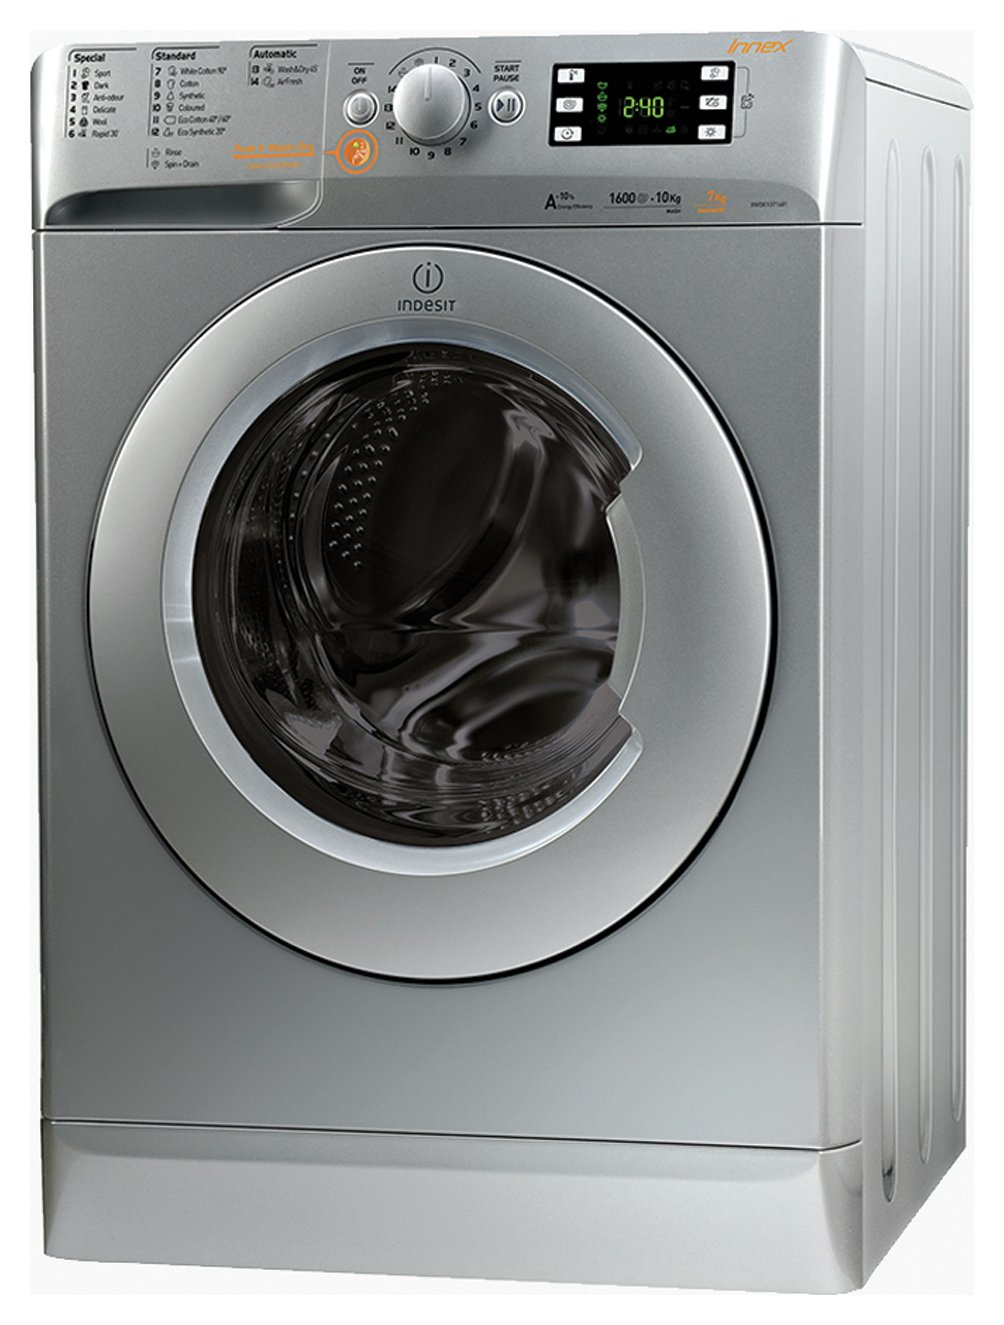 Indesit XWDE751480XSUK 7KG / 5KG 1400 Washer Dryer - Silver